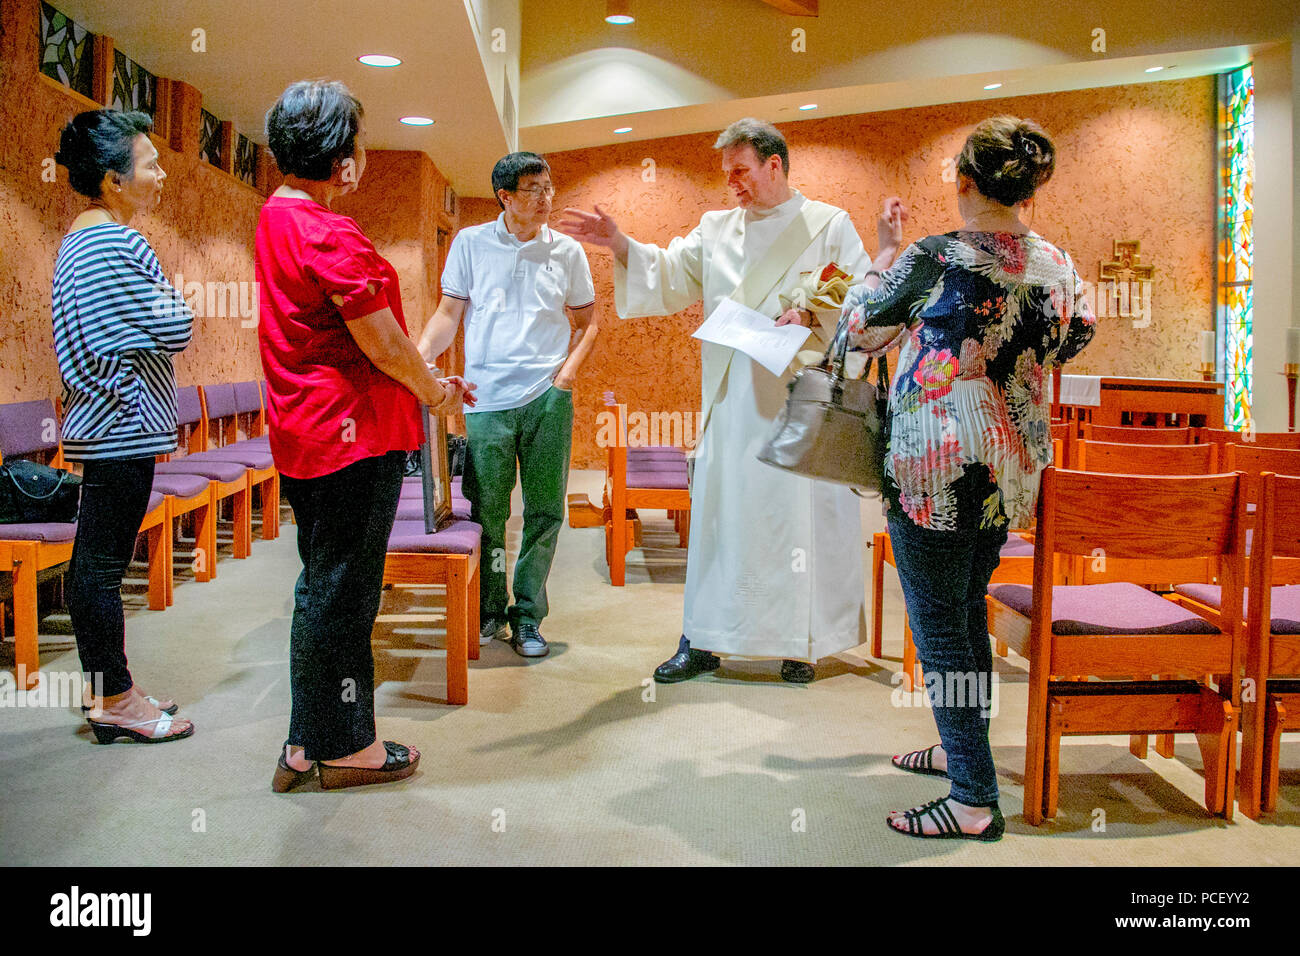 A robed deacon chats with parishioners after conducting a Divine Mercy With Benediction service to a multiracial congregation in the chapel of a Laguna Niguel, CA, Catholic church. - Stock Image